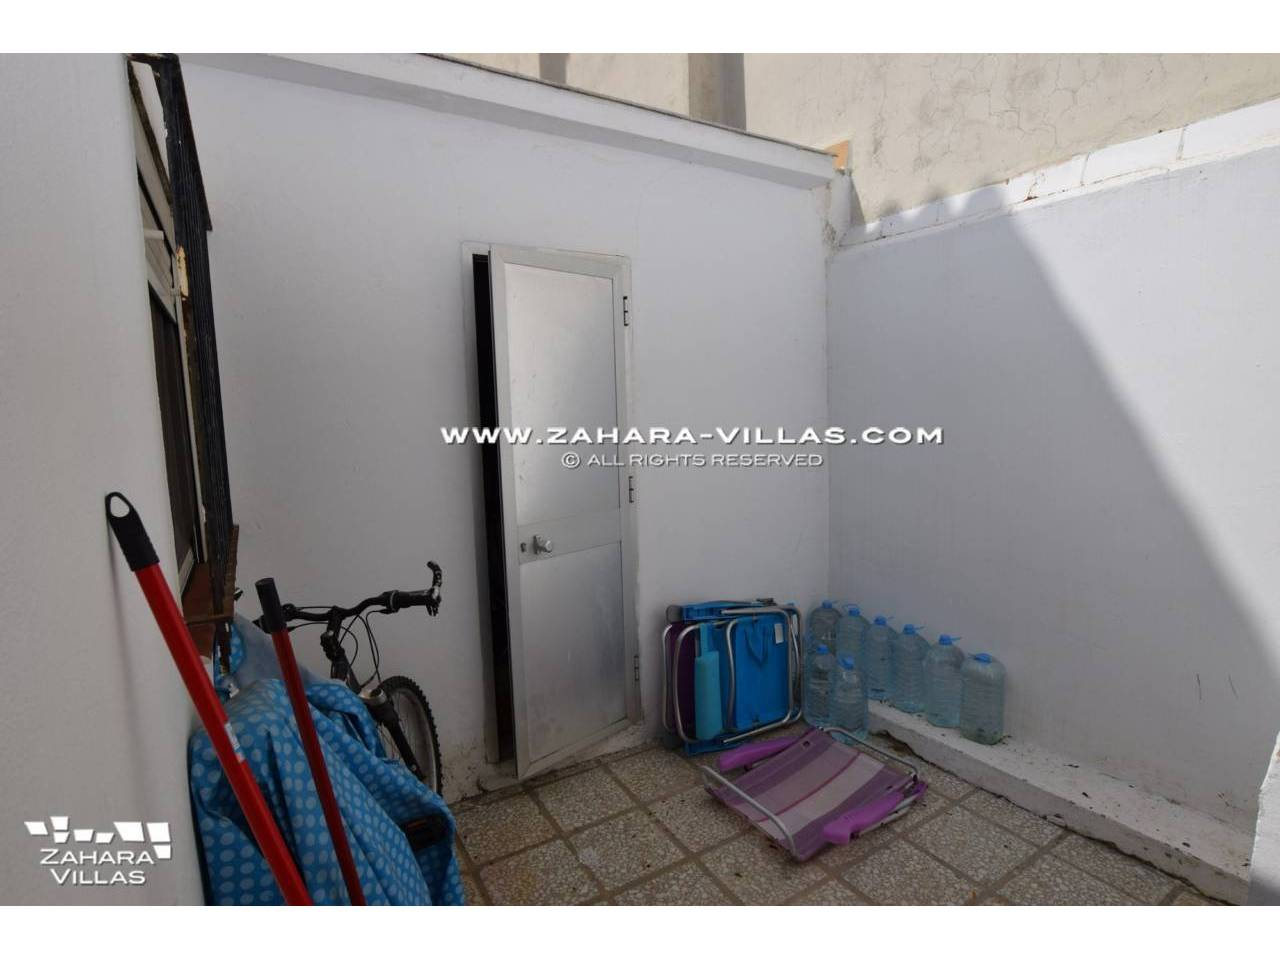 Imagen 10 de House in Avda. Del Pradillo for sale in the town of Zahara de los Atunes